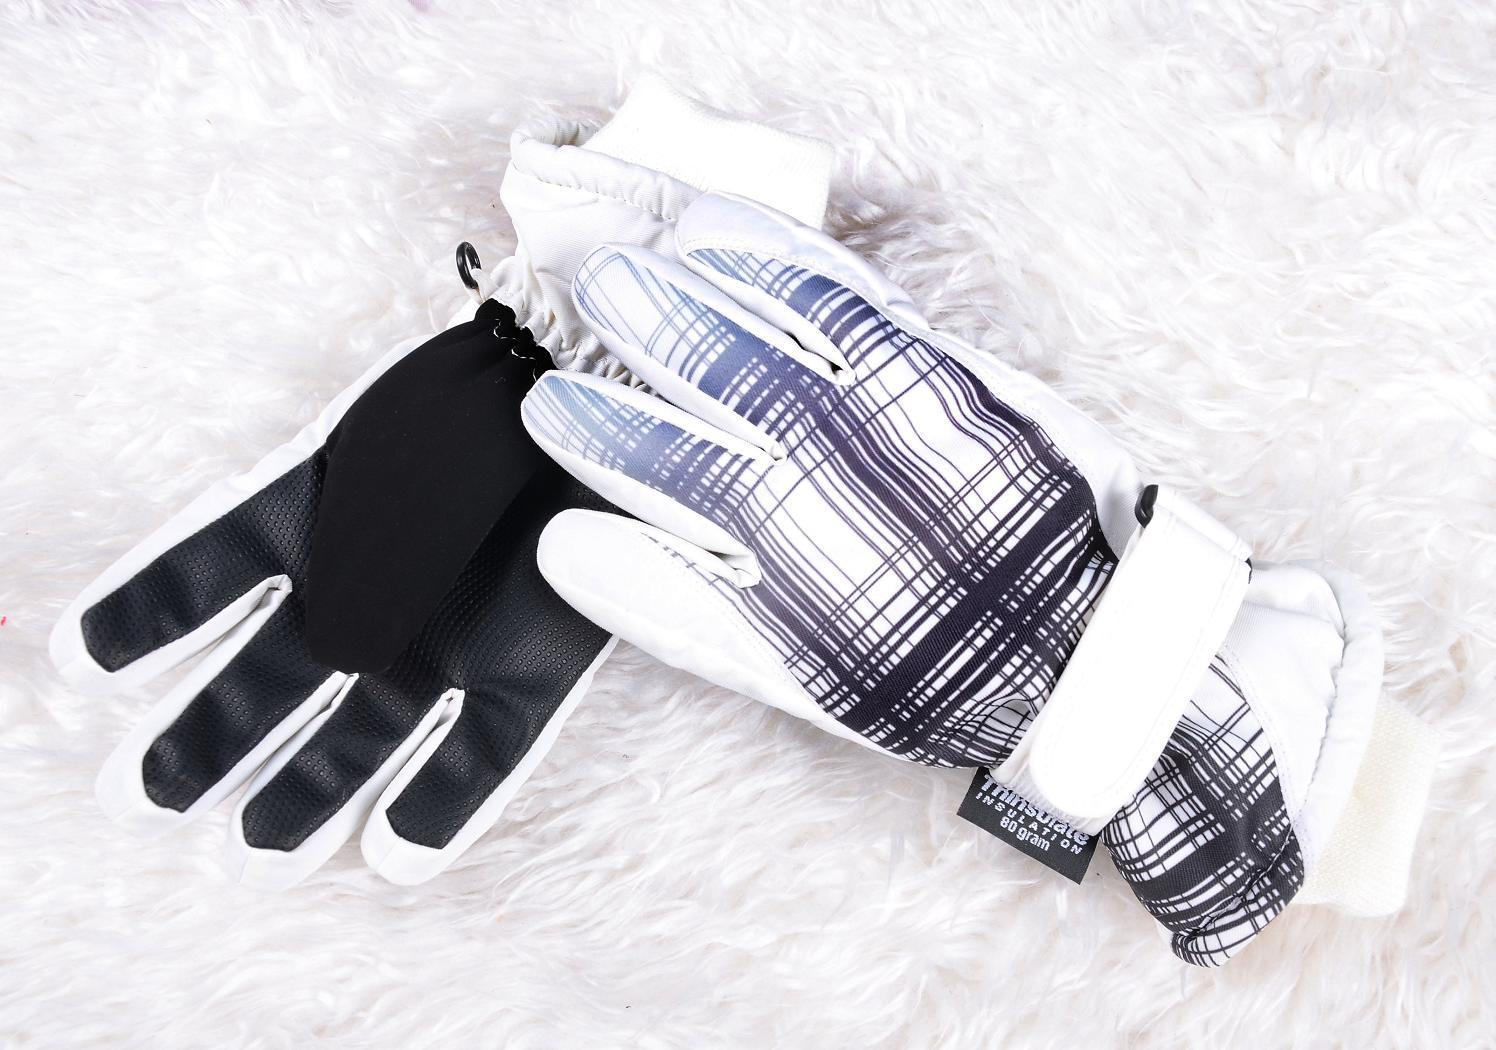 Kids Ski Glove/ Five Finger Glove/ Children Ski Glove/Children Winter Glove/Detox Glove/Okotex Glove/Mitten Ski Glove/Mitten Winter Glove